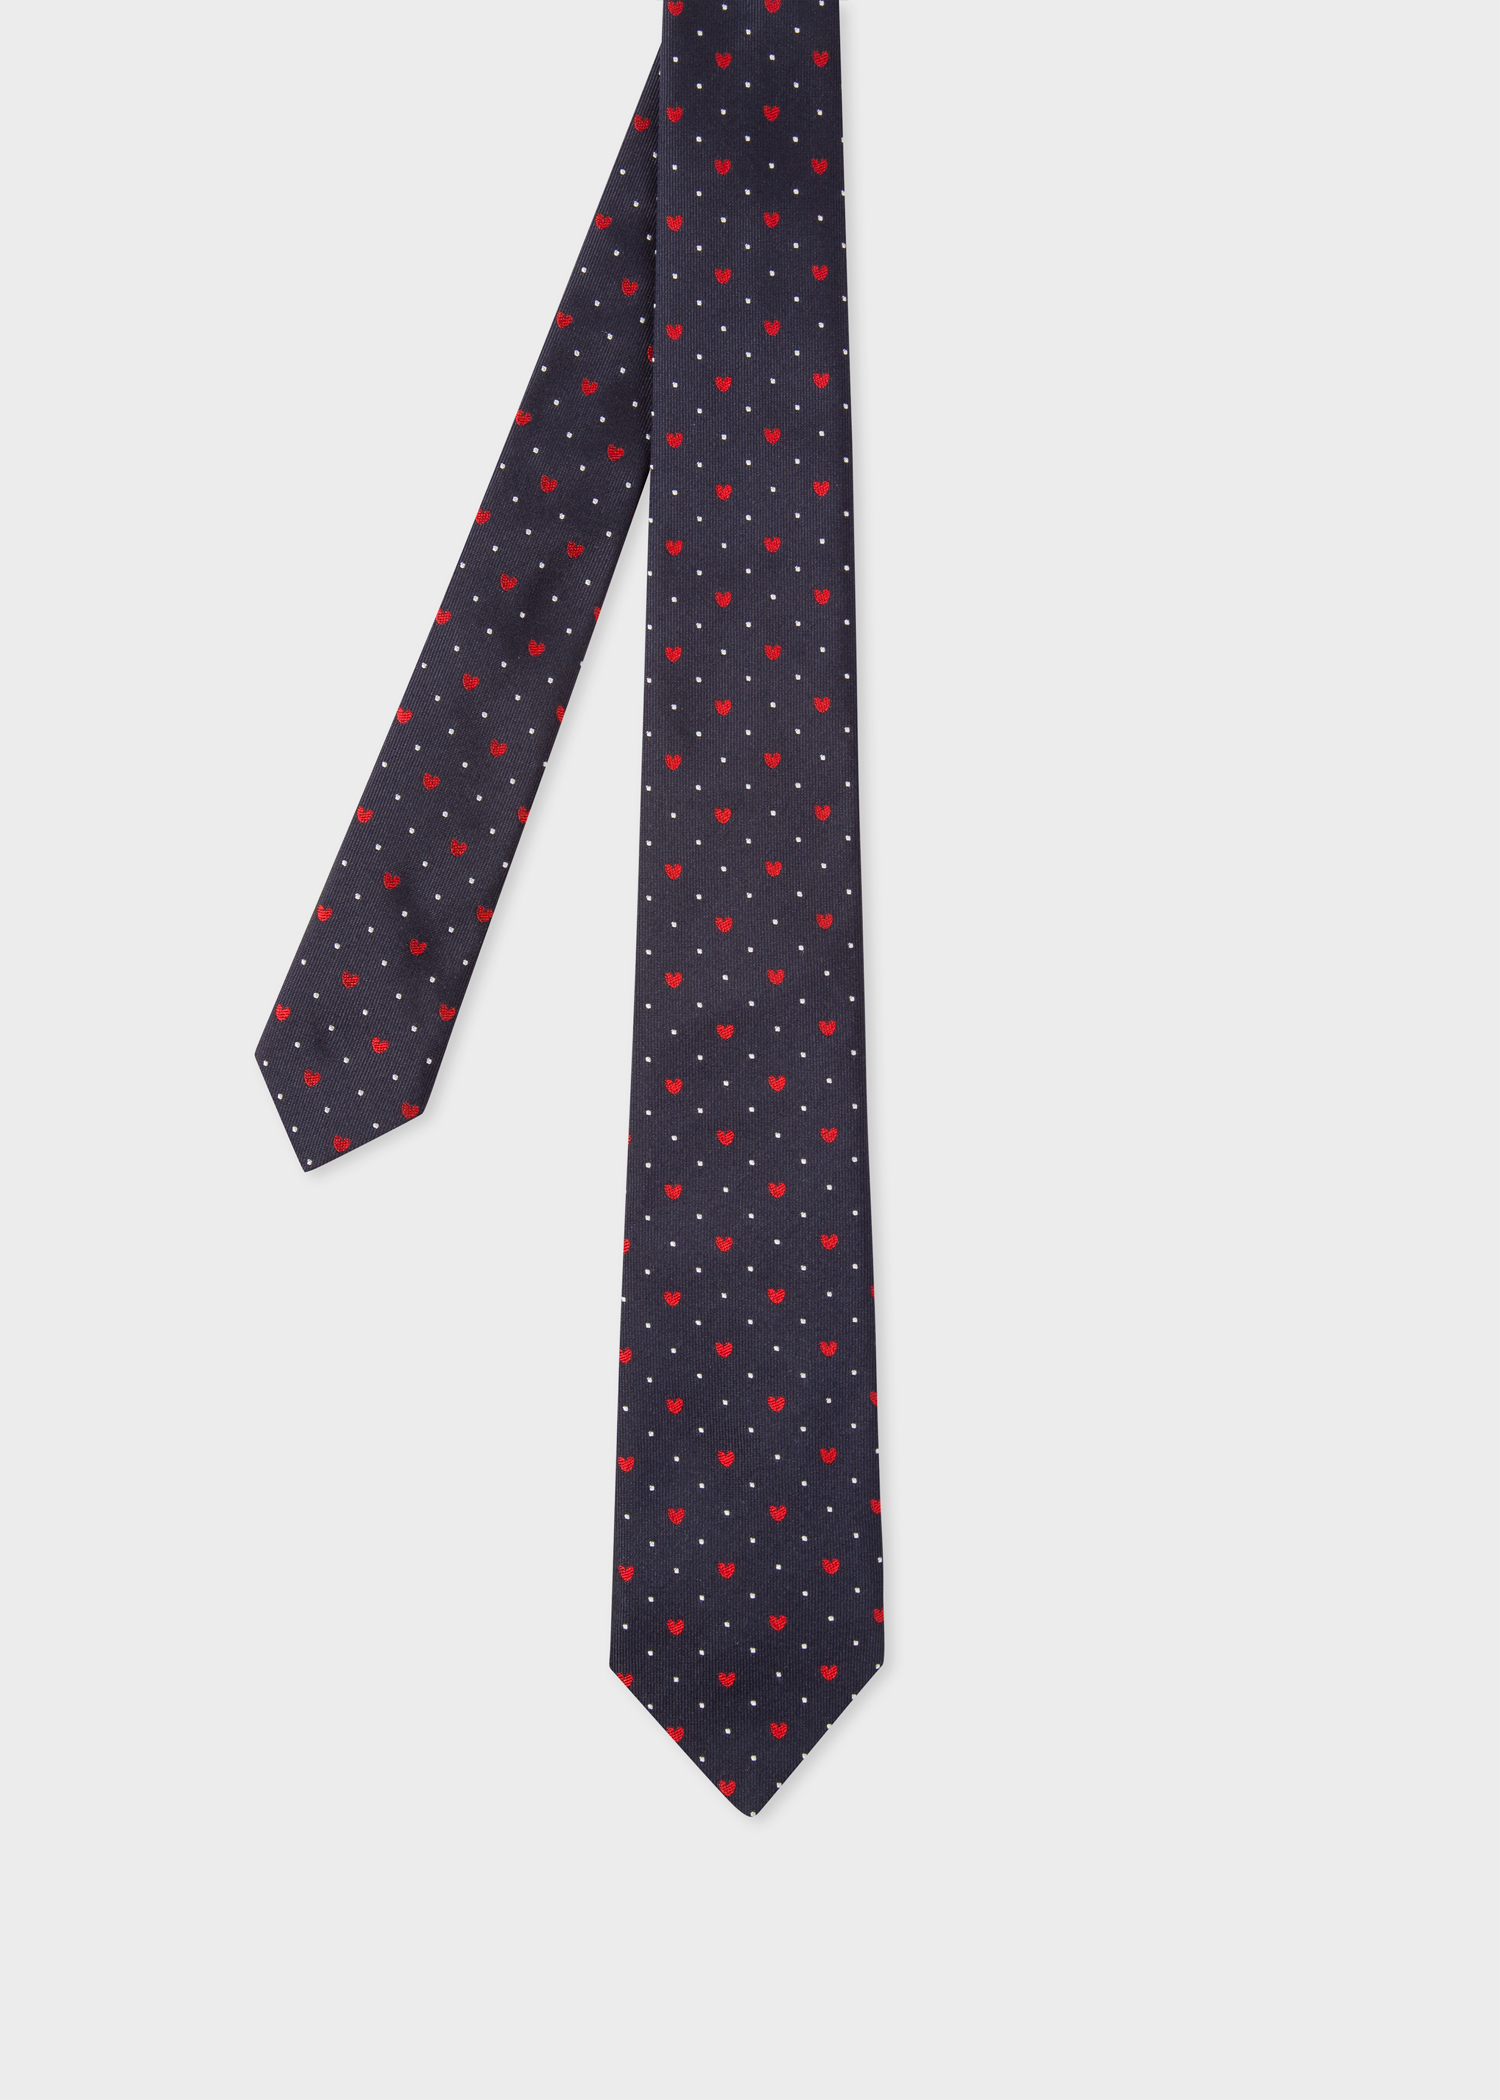 8a430499f652 Front View - Men's Navy 'Heart And Dot' Motif Narrow Silk Tie ...